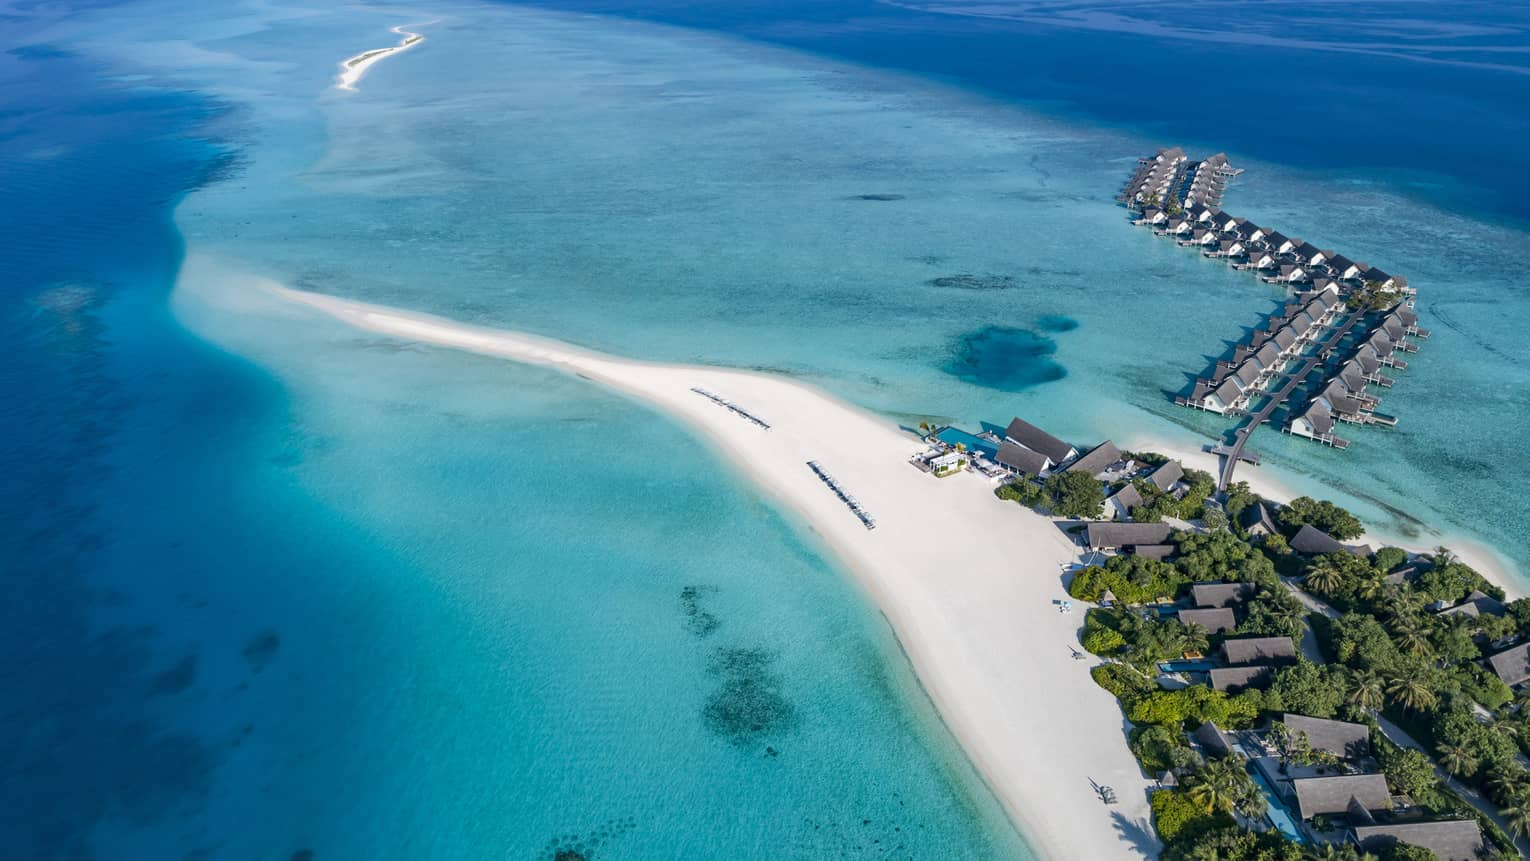 Aerial view of Four Seasons Resort Maldives at Landaa Giraavaru